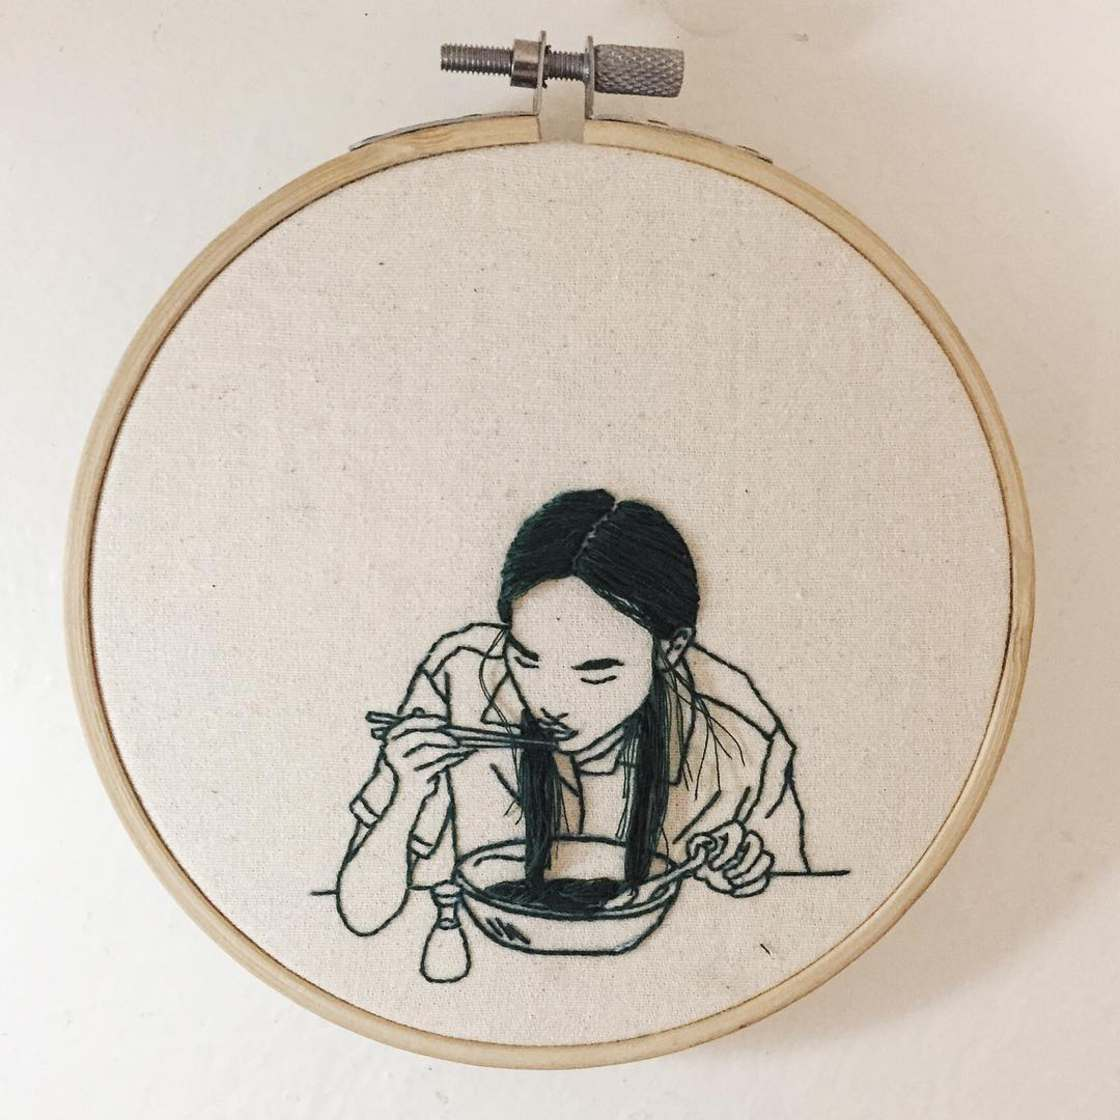 Delicate embroidery by Sheena Liam